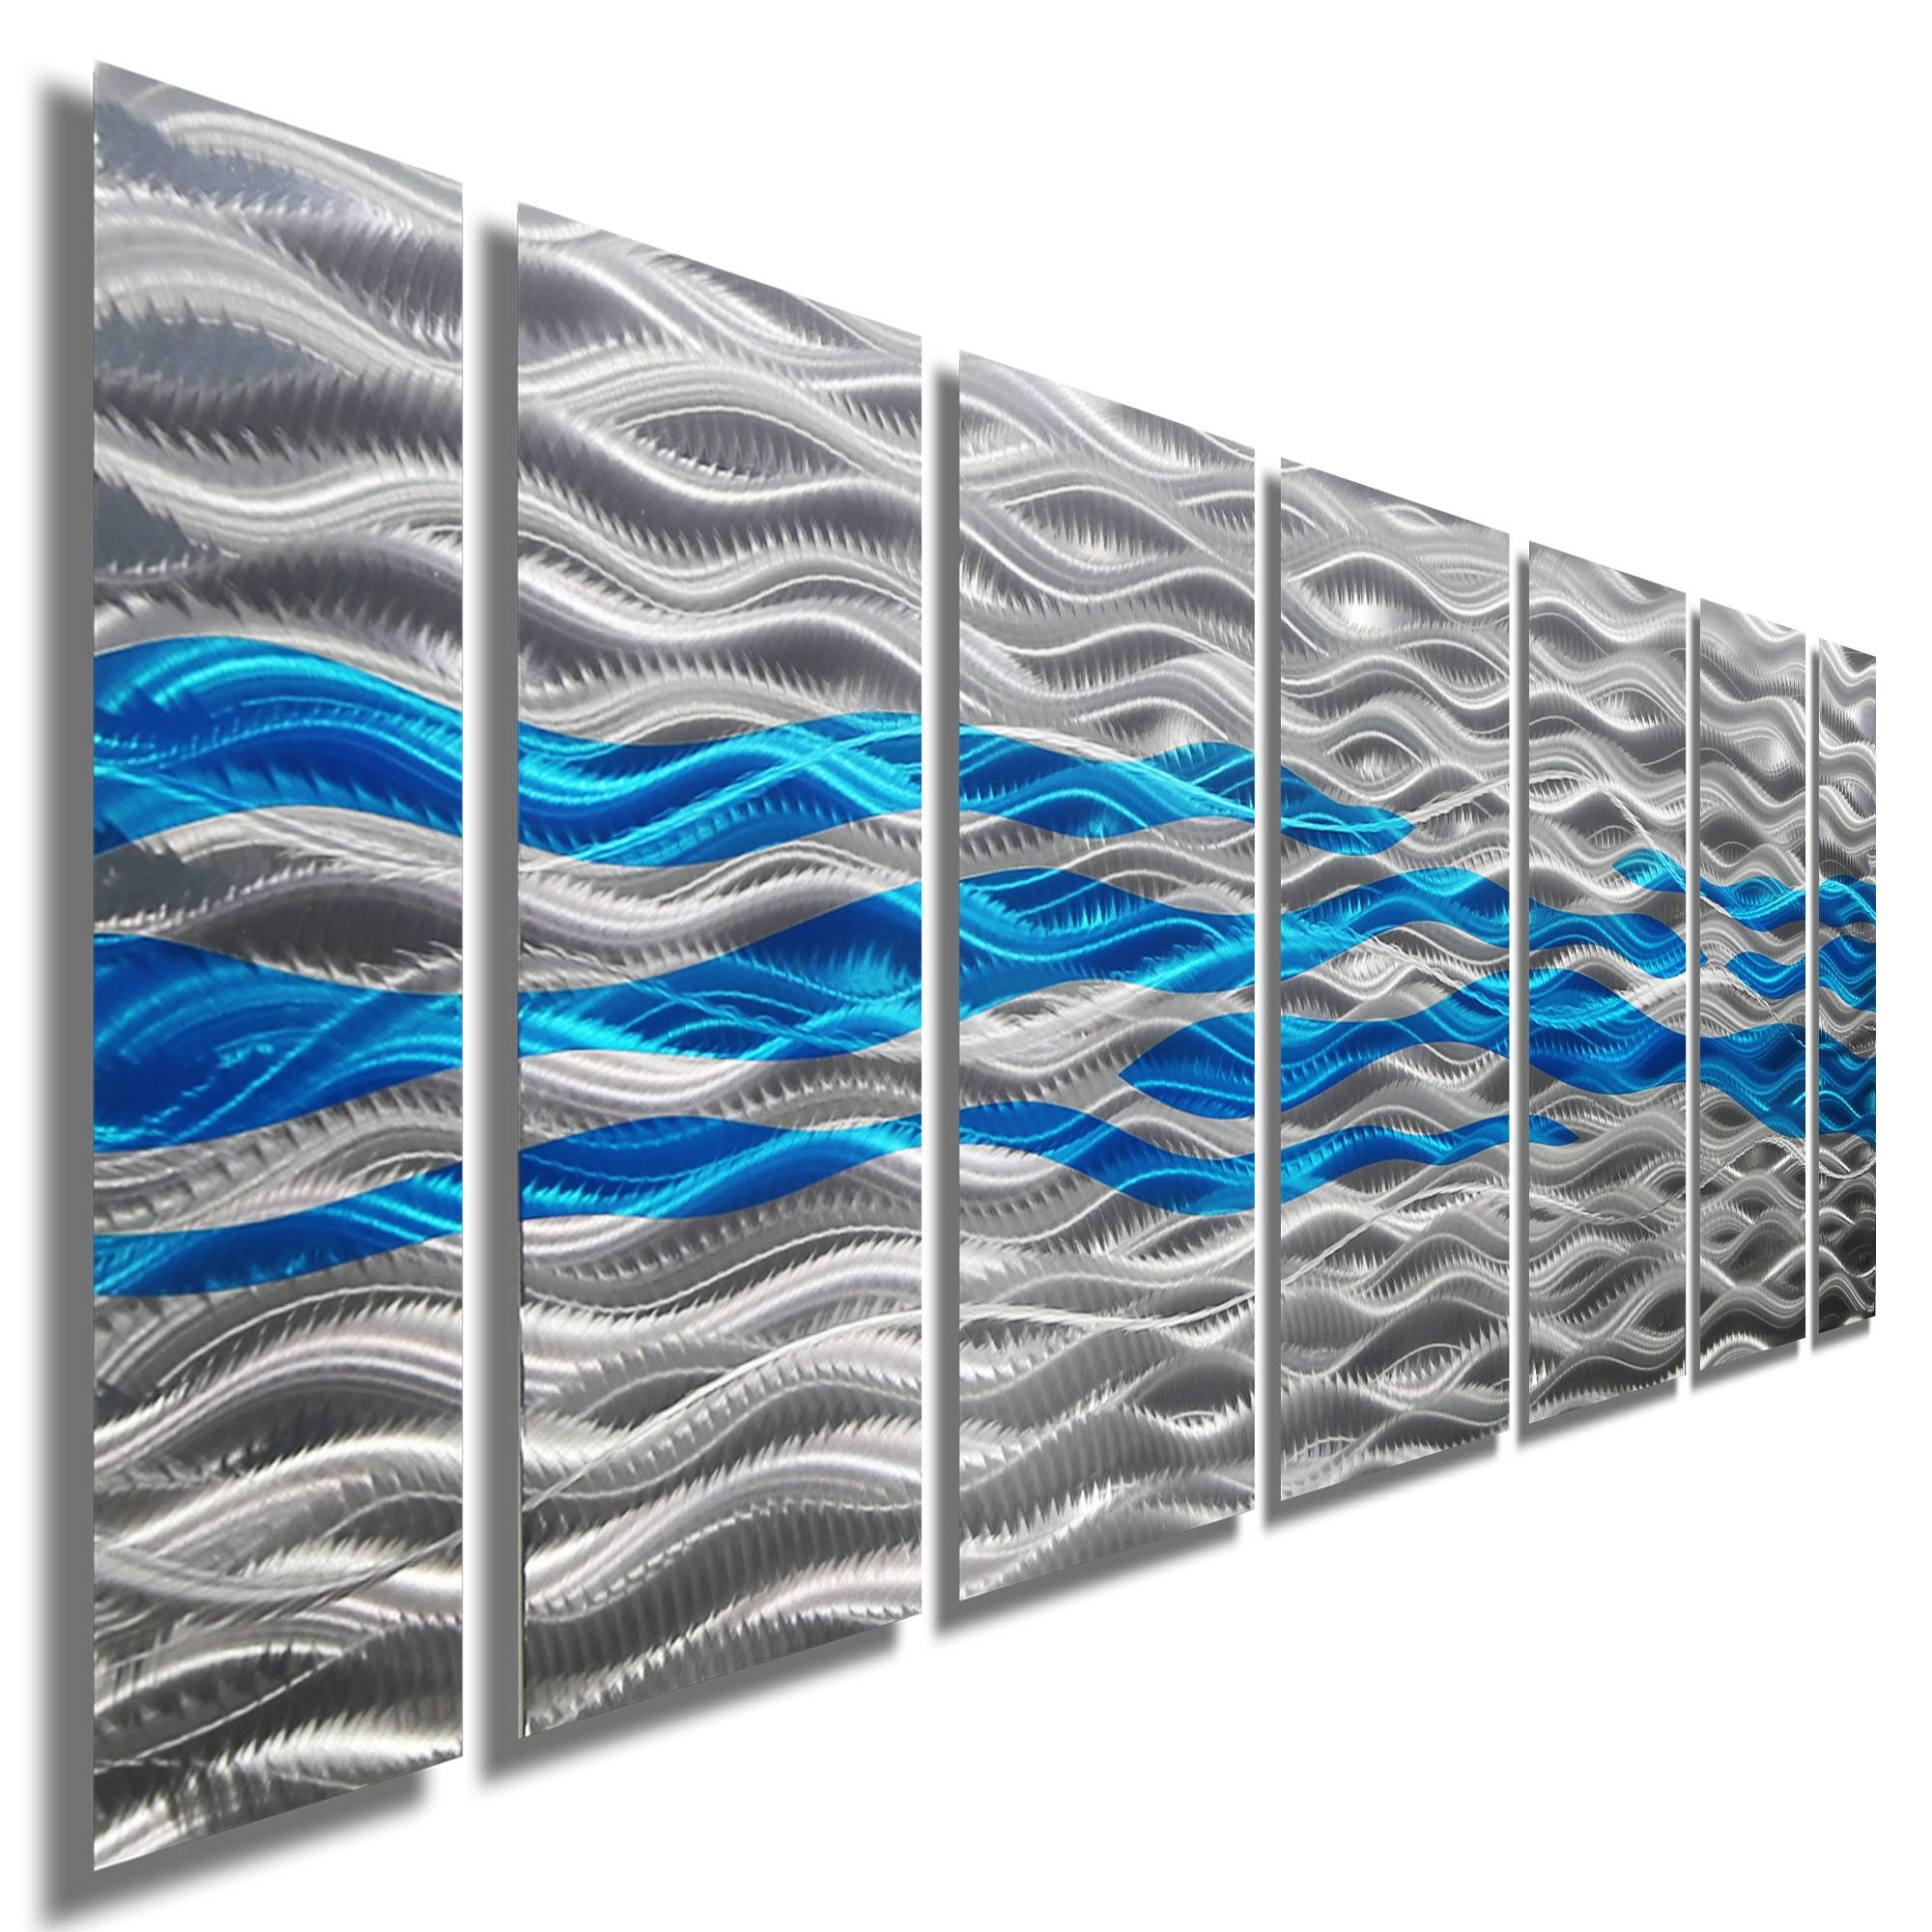 Caliente Aqua – Silver & Aqua Blue Abstract Metal Wall Artjon With Best And Newest Blue And Silver Wall Art (View 17 of 20)